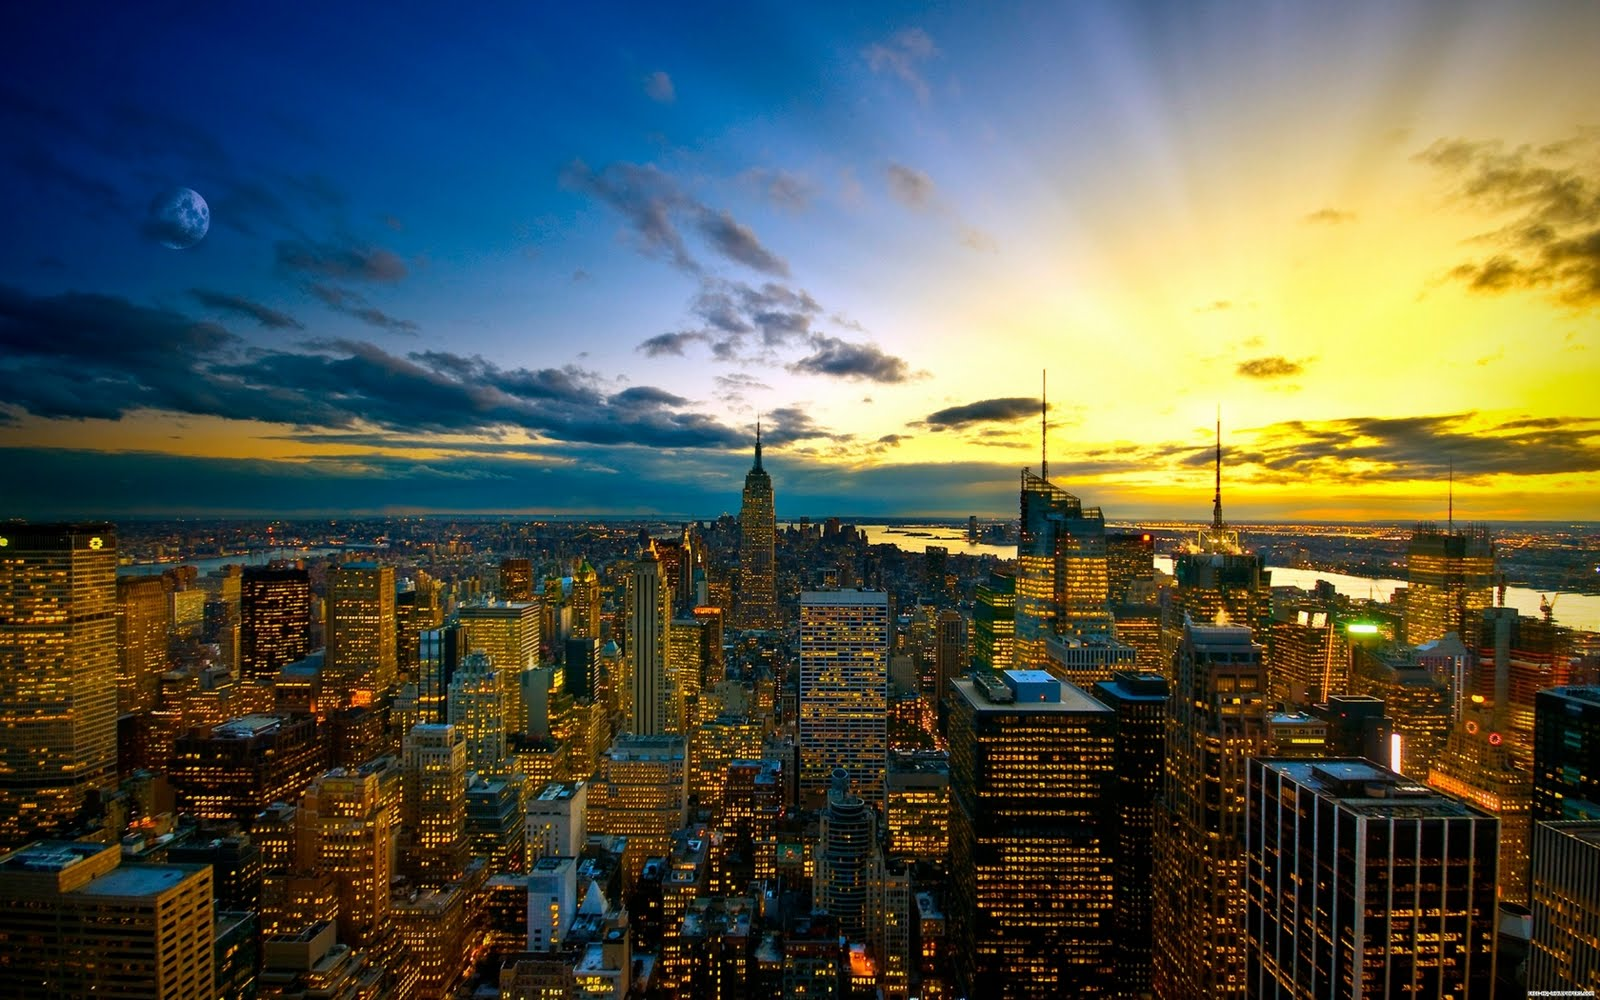 New York City Skyline Wallpapers | Live HD Wallpaper HQ Pictures ...